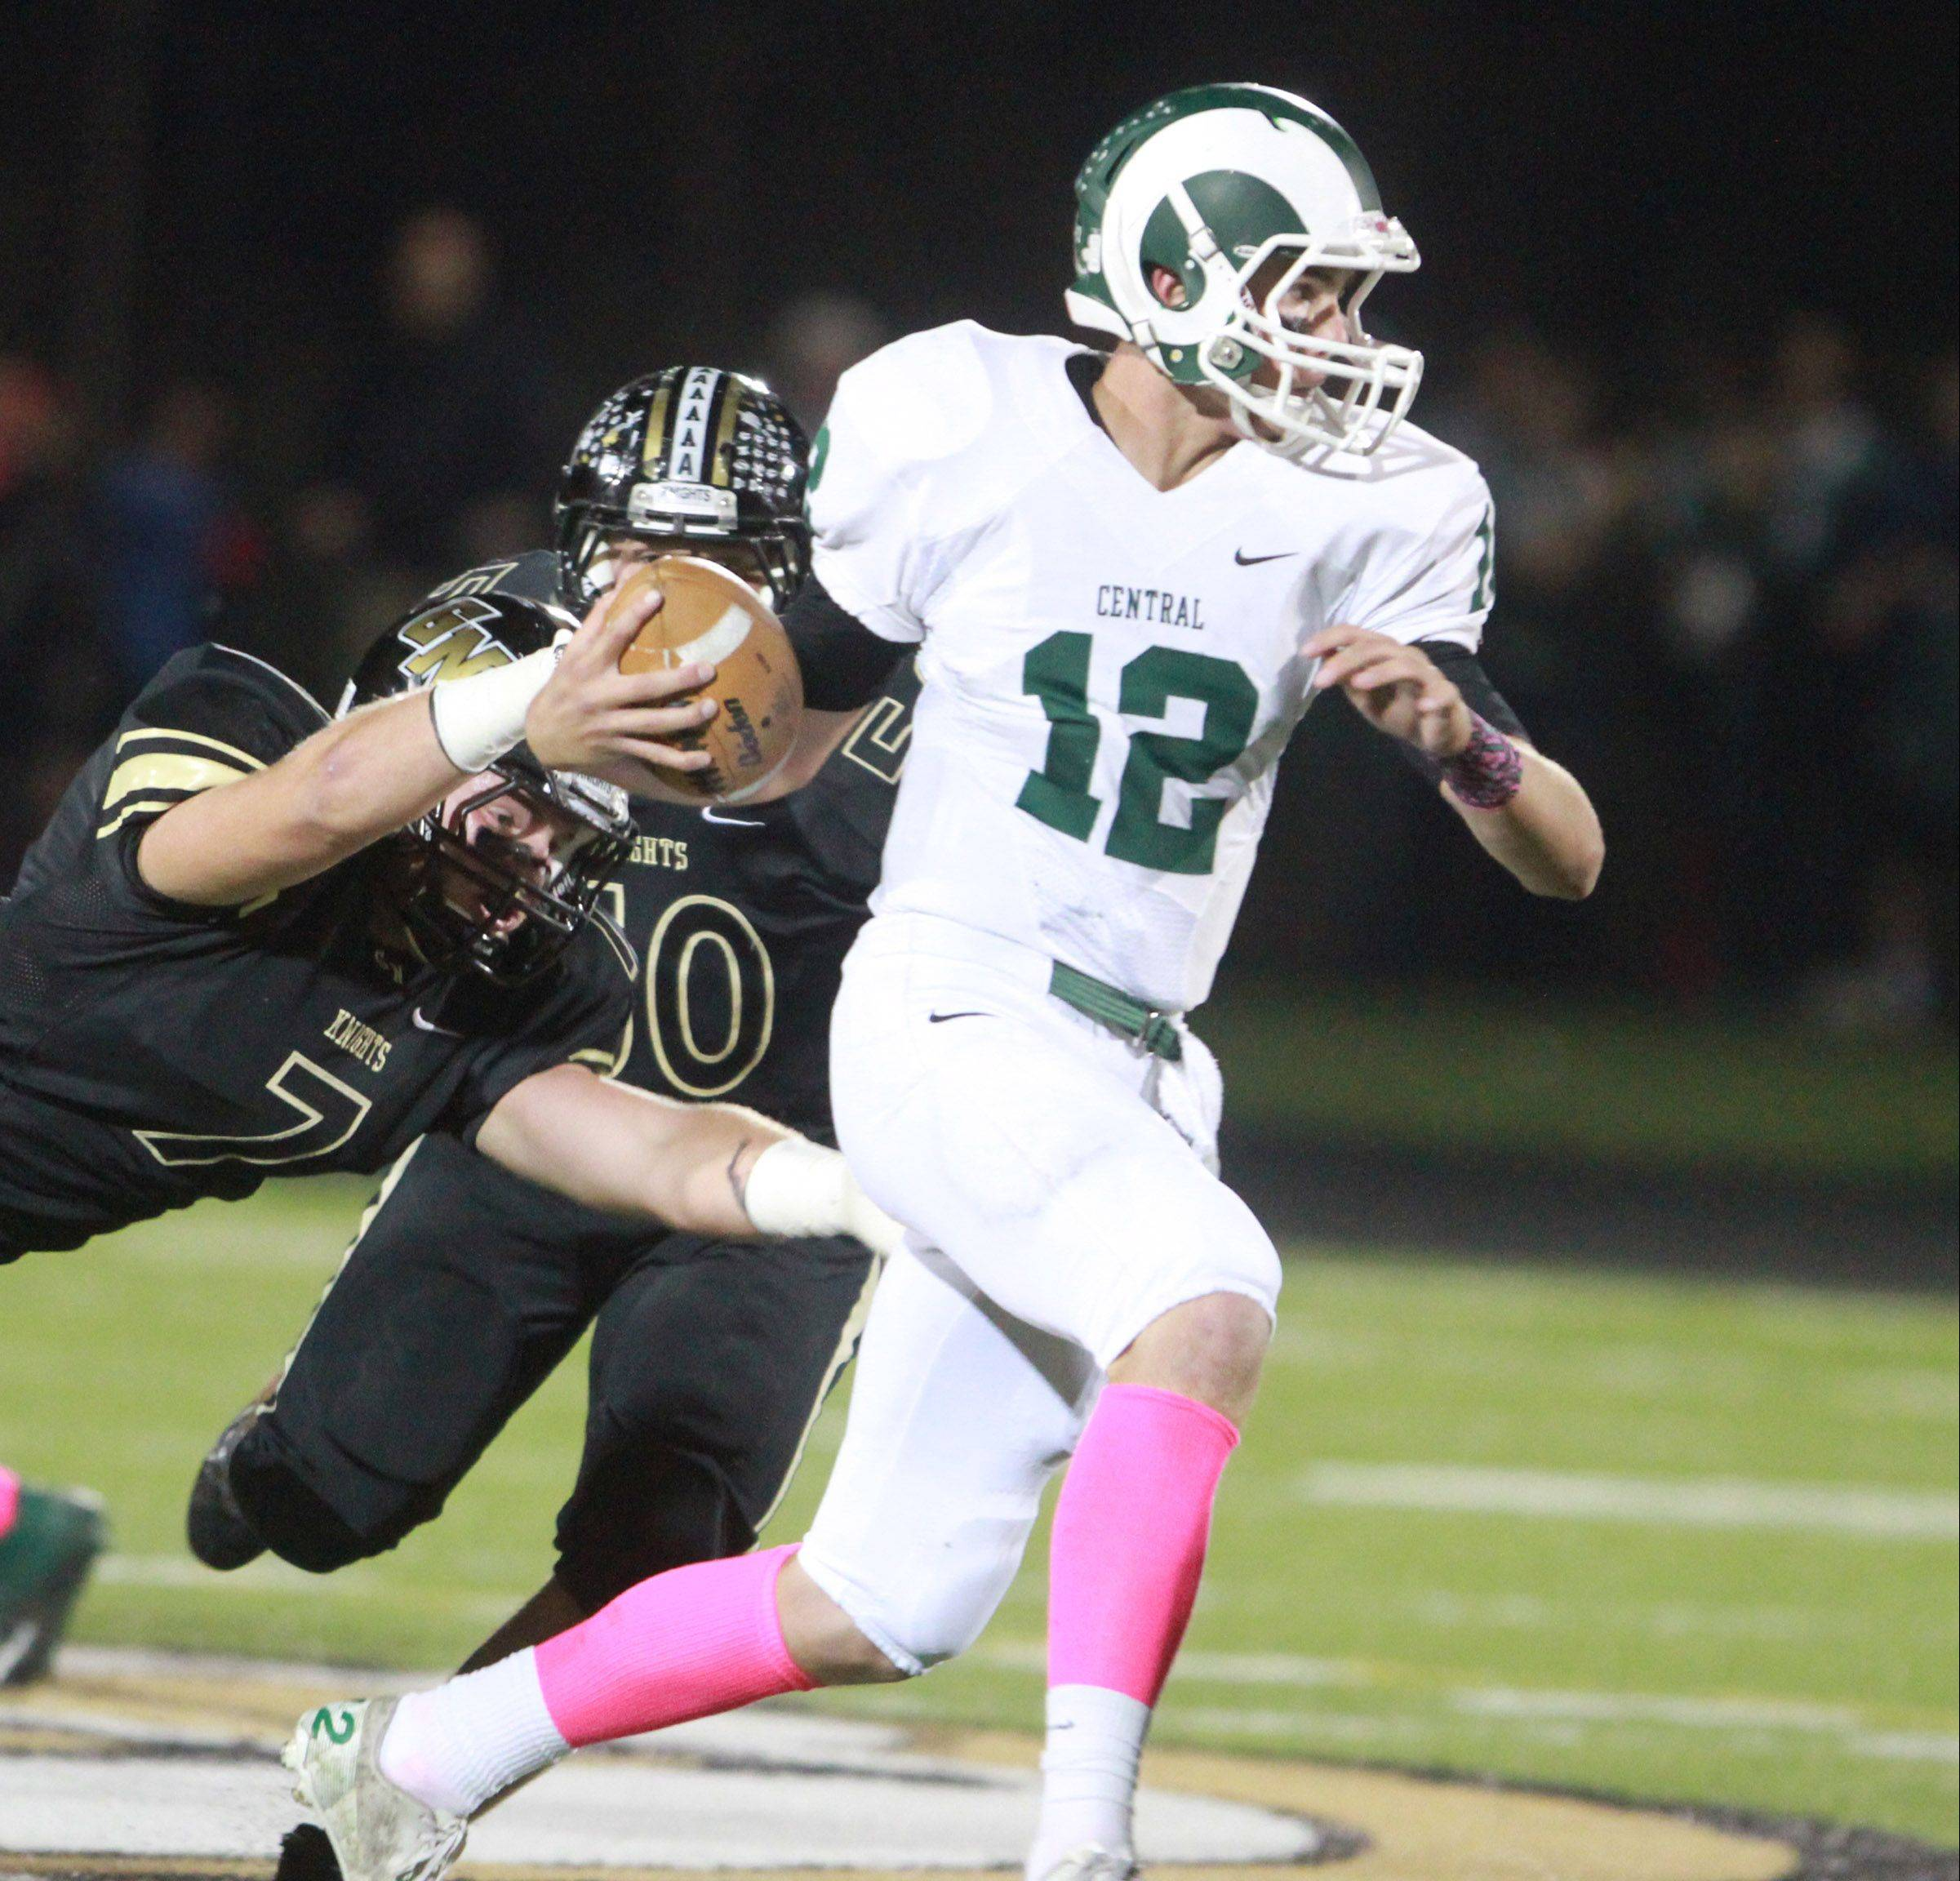 Grayslake Central quarterback Alex Lennartz runs the ball against host Grayslake North on Friday.